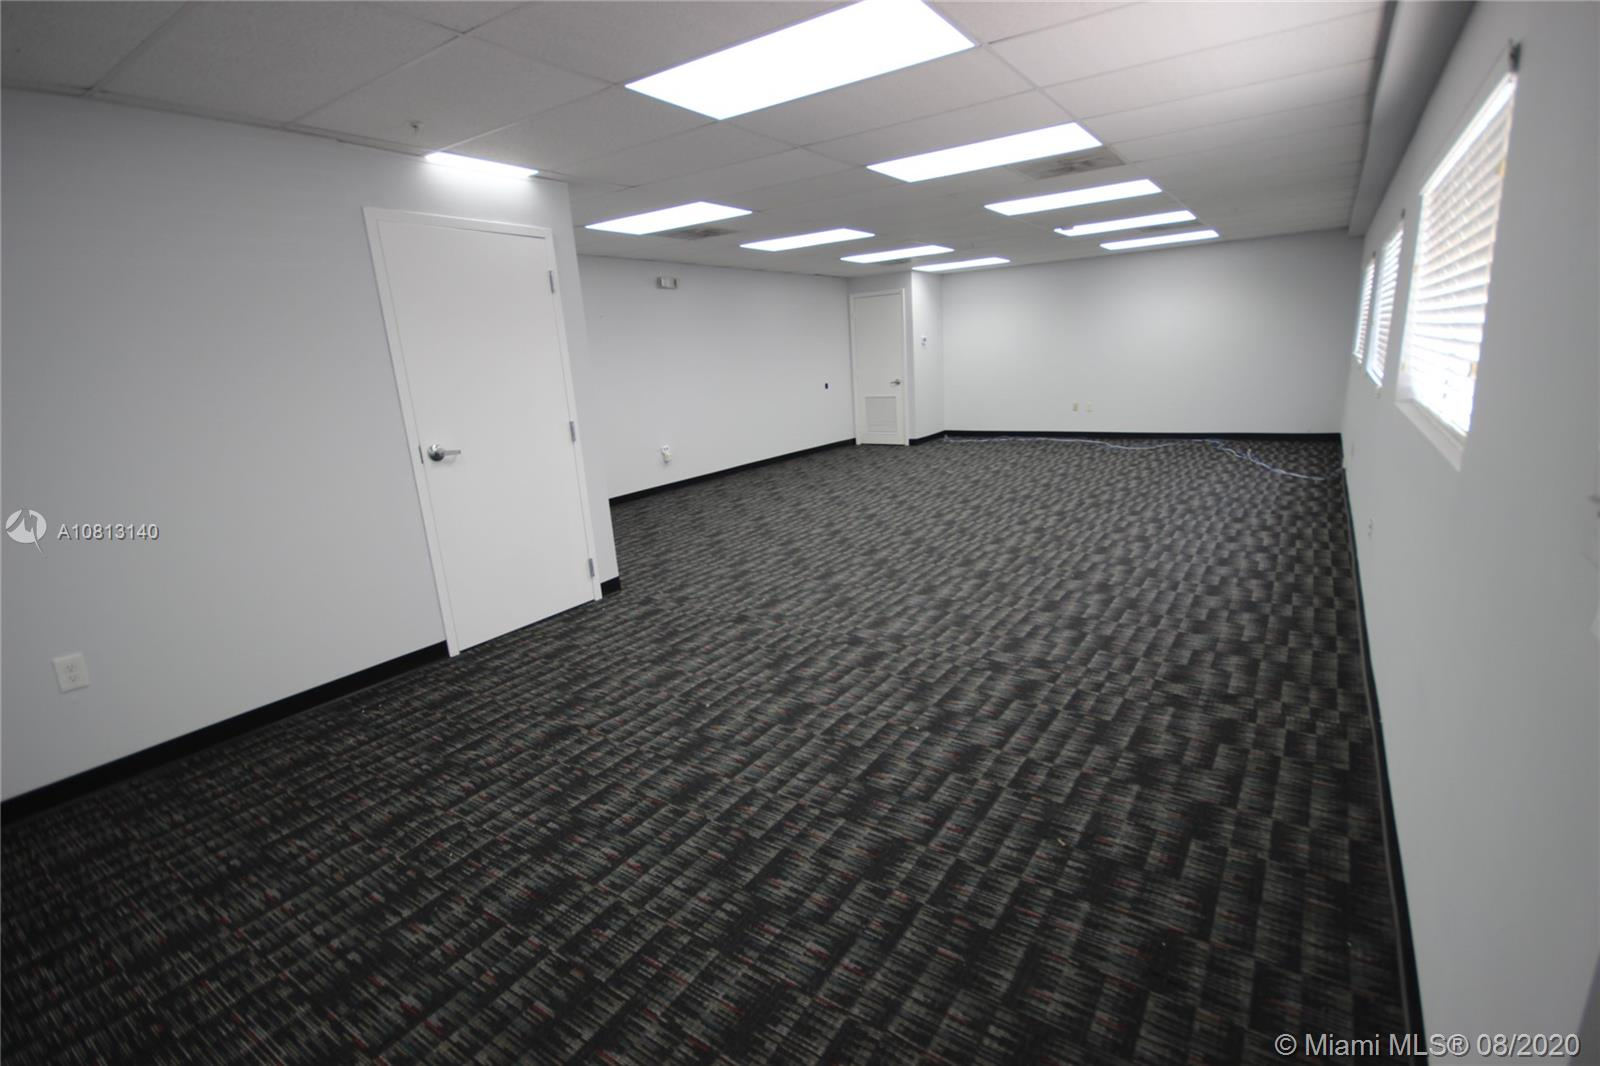 Bottom floor office area +/-800sqft.  New flooring and paint.  Secured, private entrance to office with shared use of bathroom and kitchen.  Located in an excellent location just minutes away from the Turnpike, Dolphin Mall and Miami International Mall.  Includes water, electricity, security service, internet and 3 assigned parking spaces.